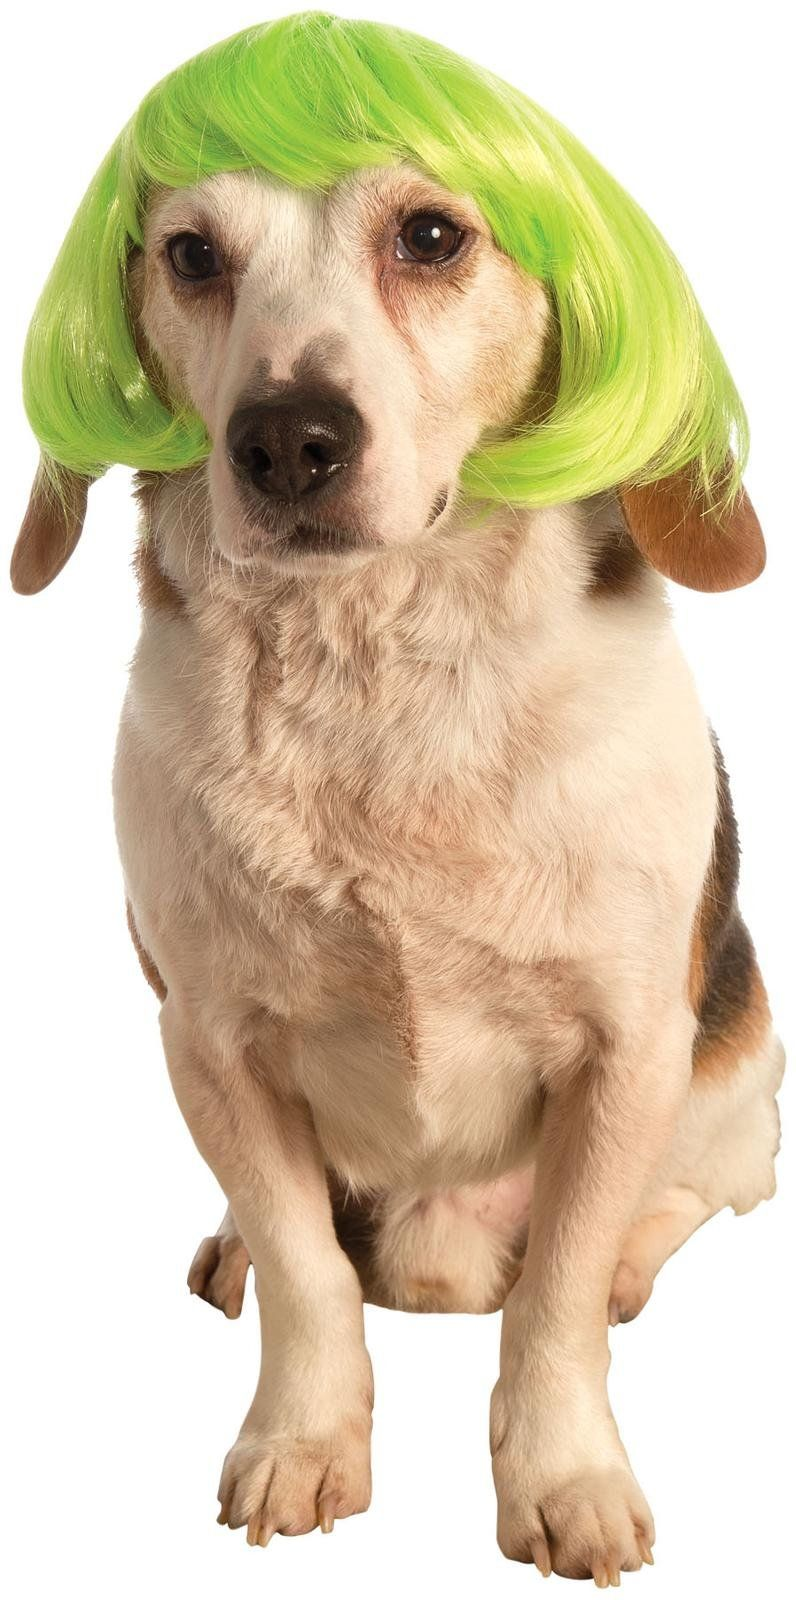 Is your dog a real go go girl This short bob pet wig in neon green